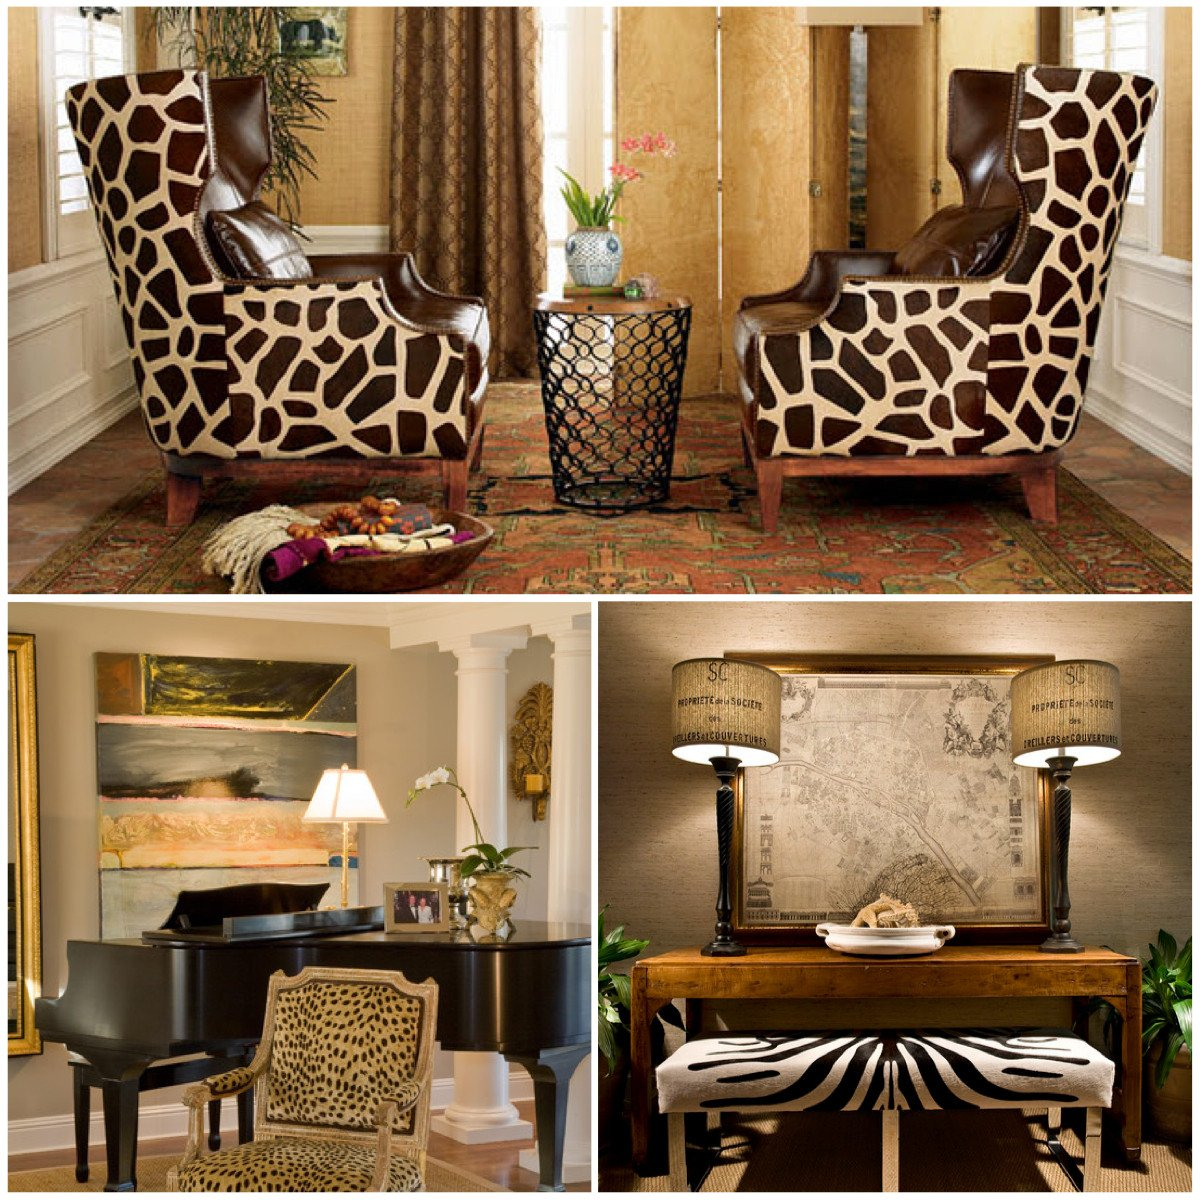 Animal Print Furniture Home Decor Luxury Animal Print Pattern Trend Out Of Africa and Into Your Home